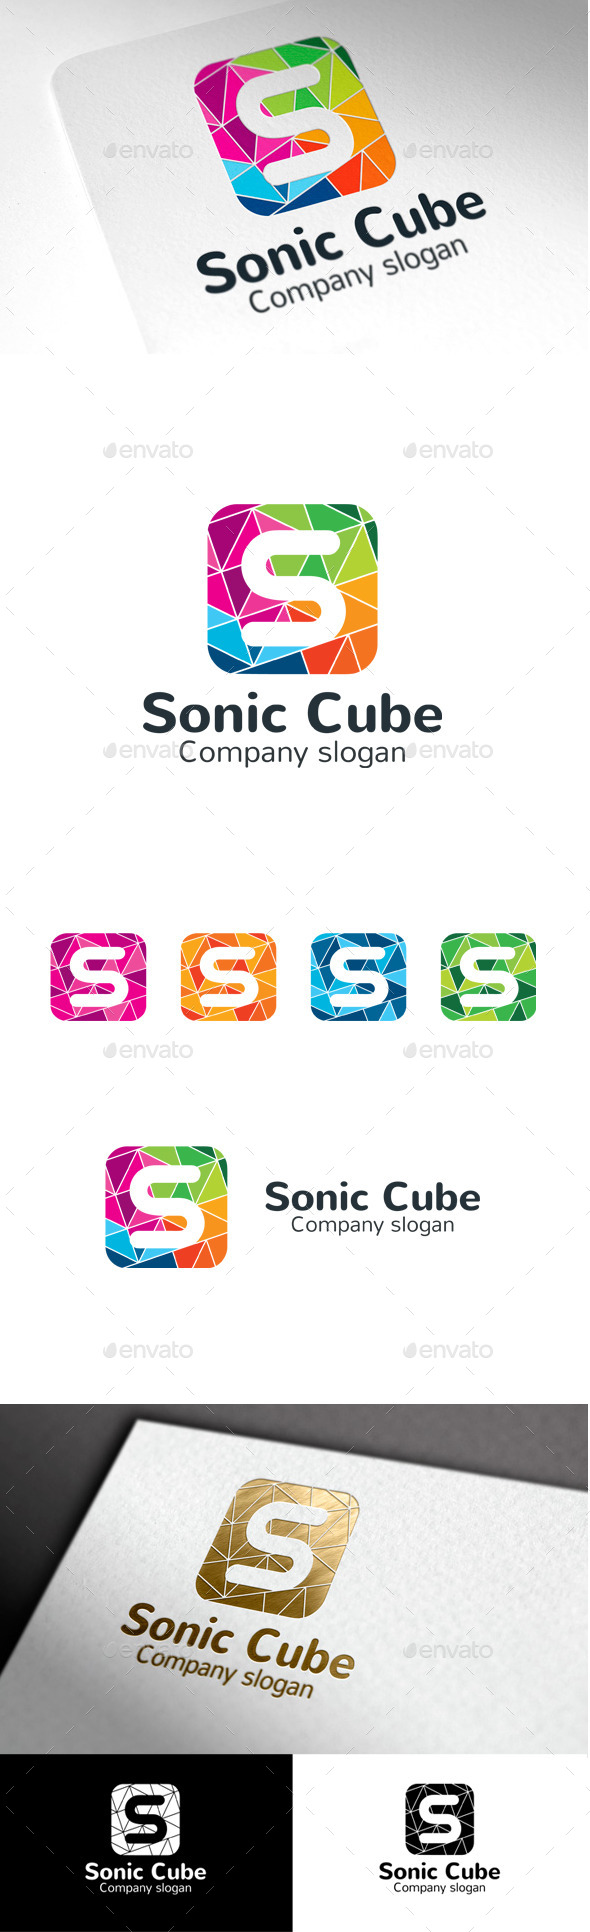 GraphicRiver Sonic Cube S Letter 9998920